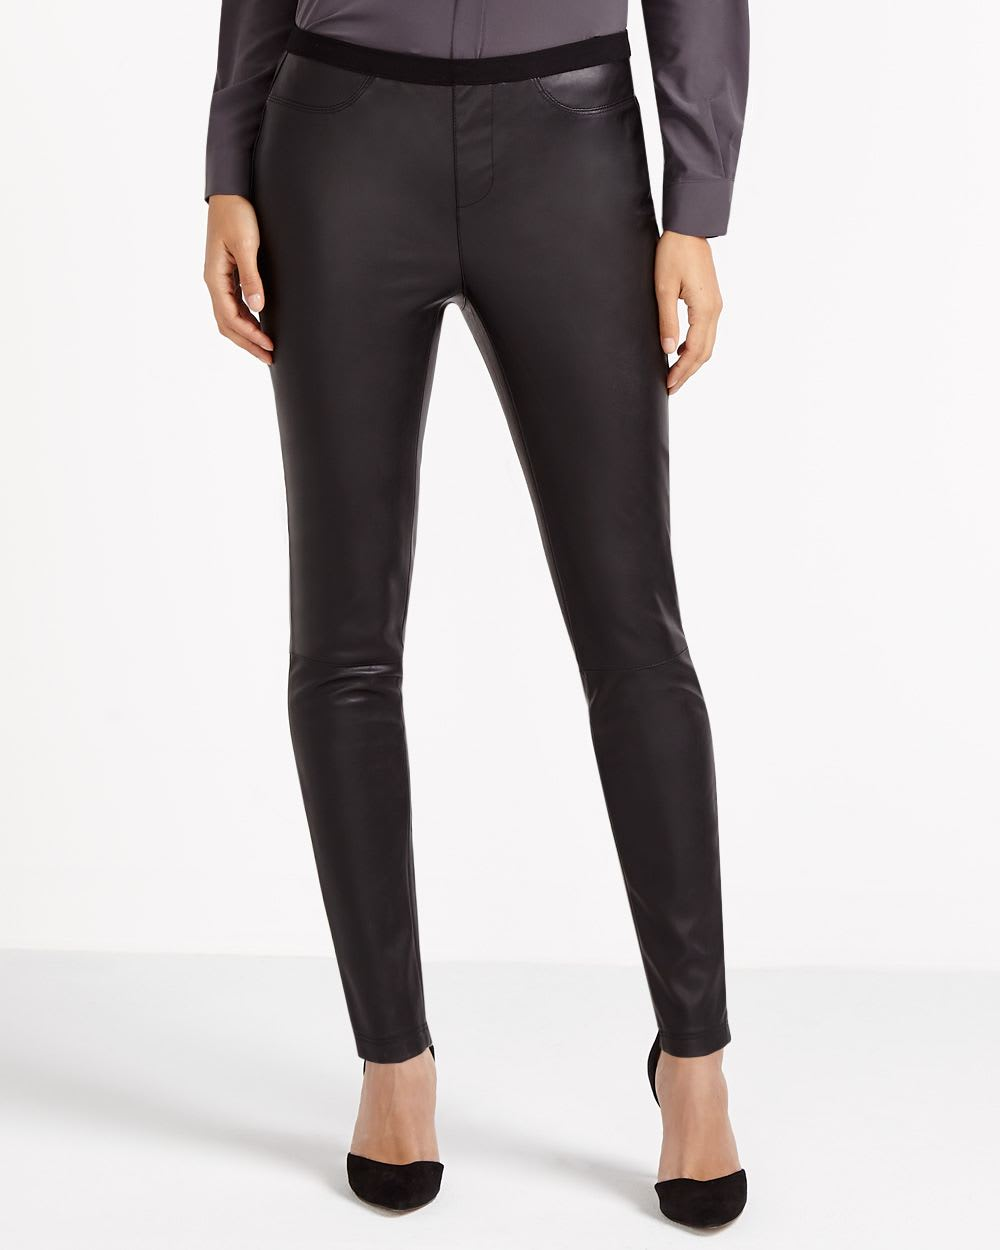 ea936b5de4b87 The Faux Leather Legging by Meghan Markle | Women | Reitmans